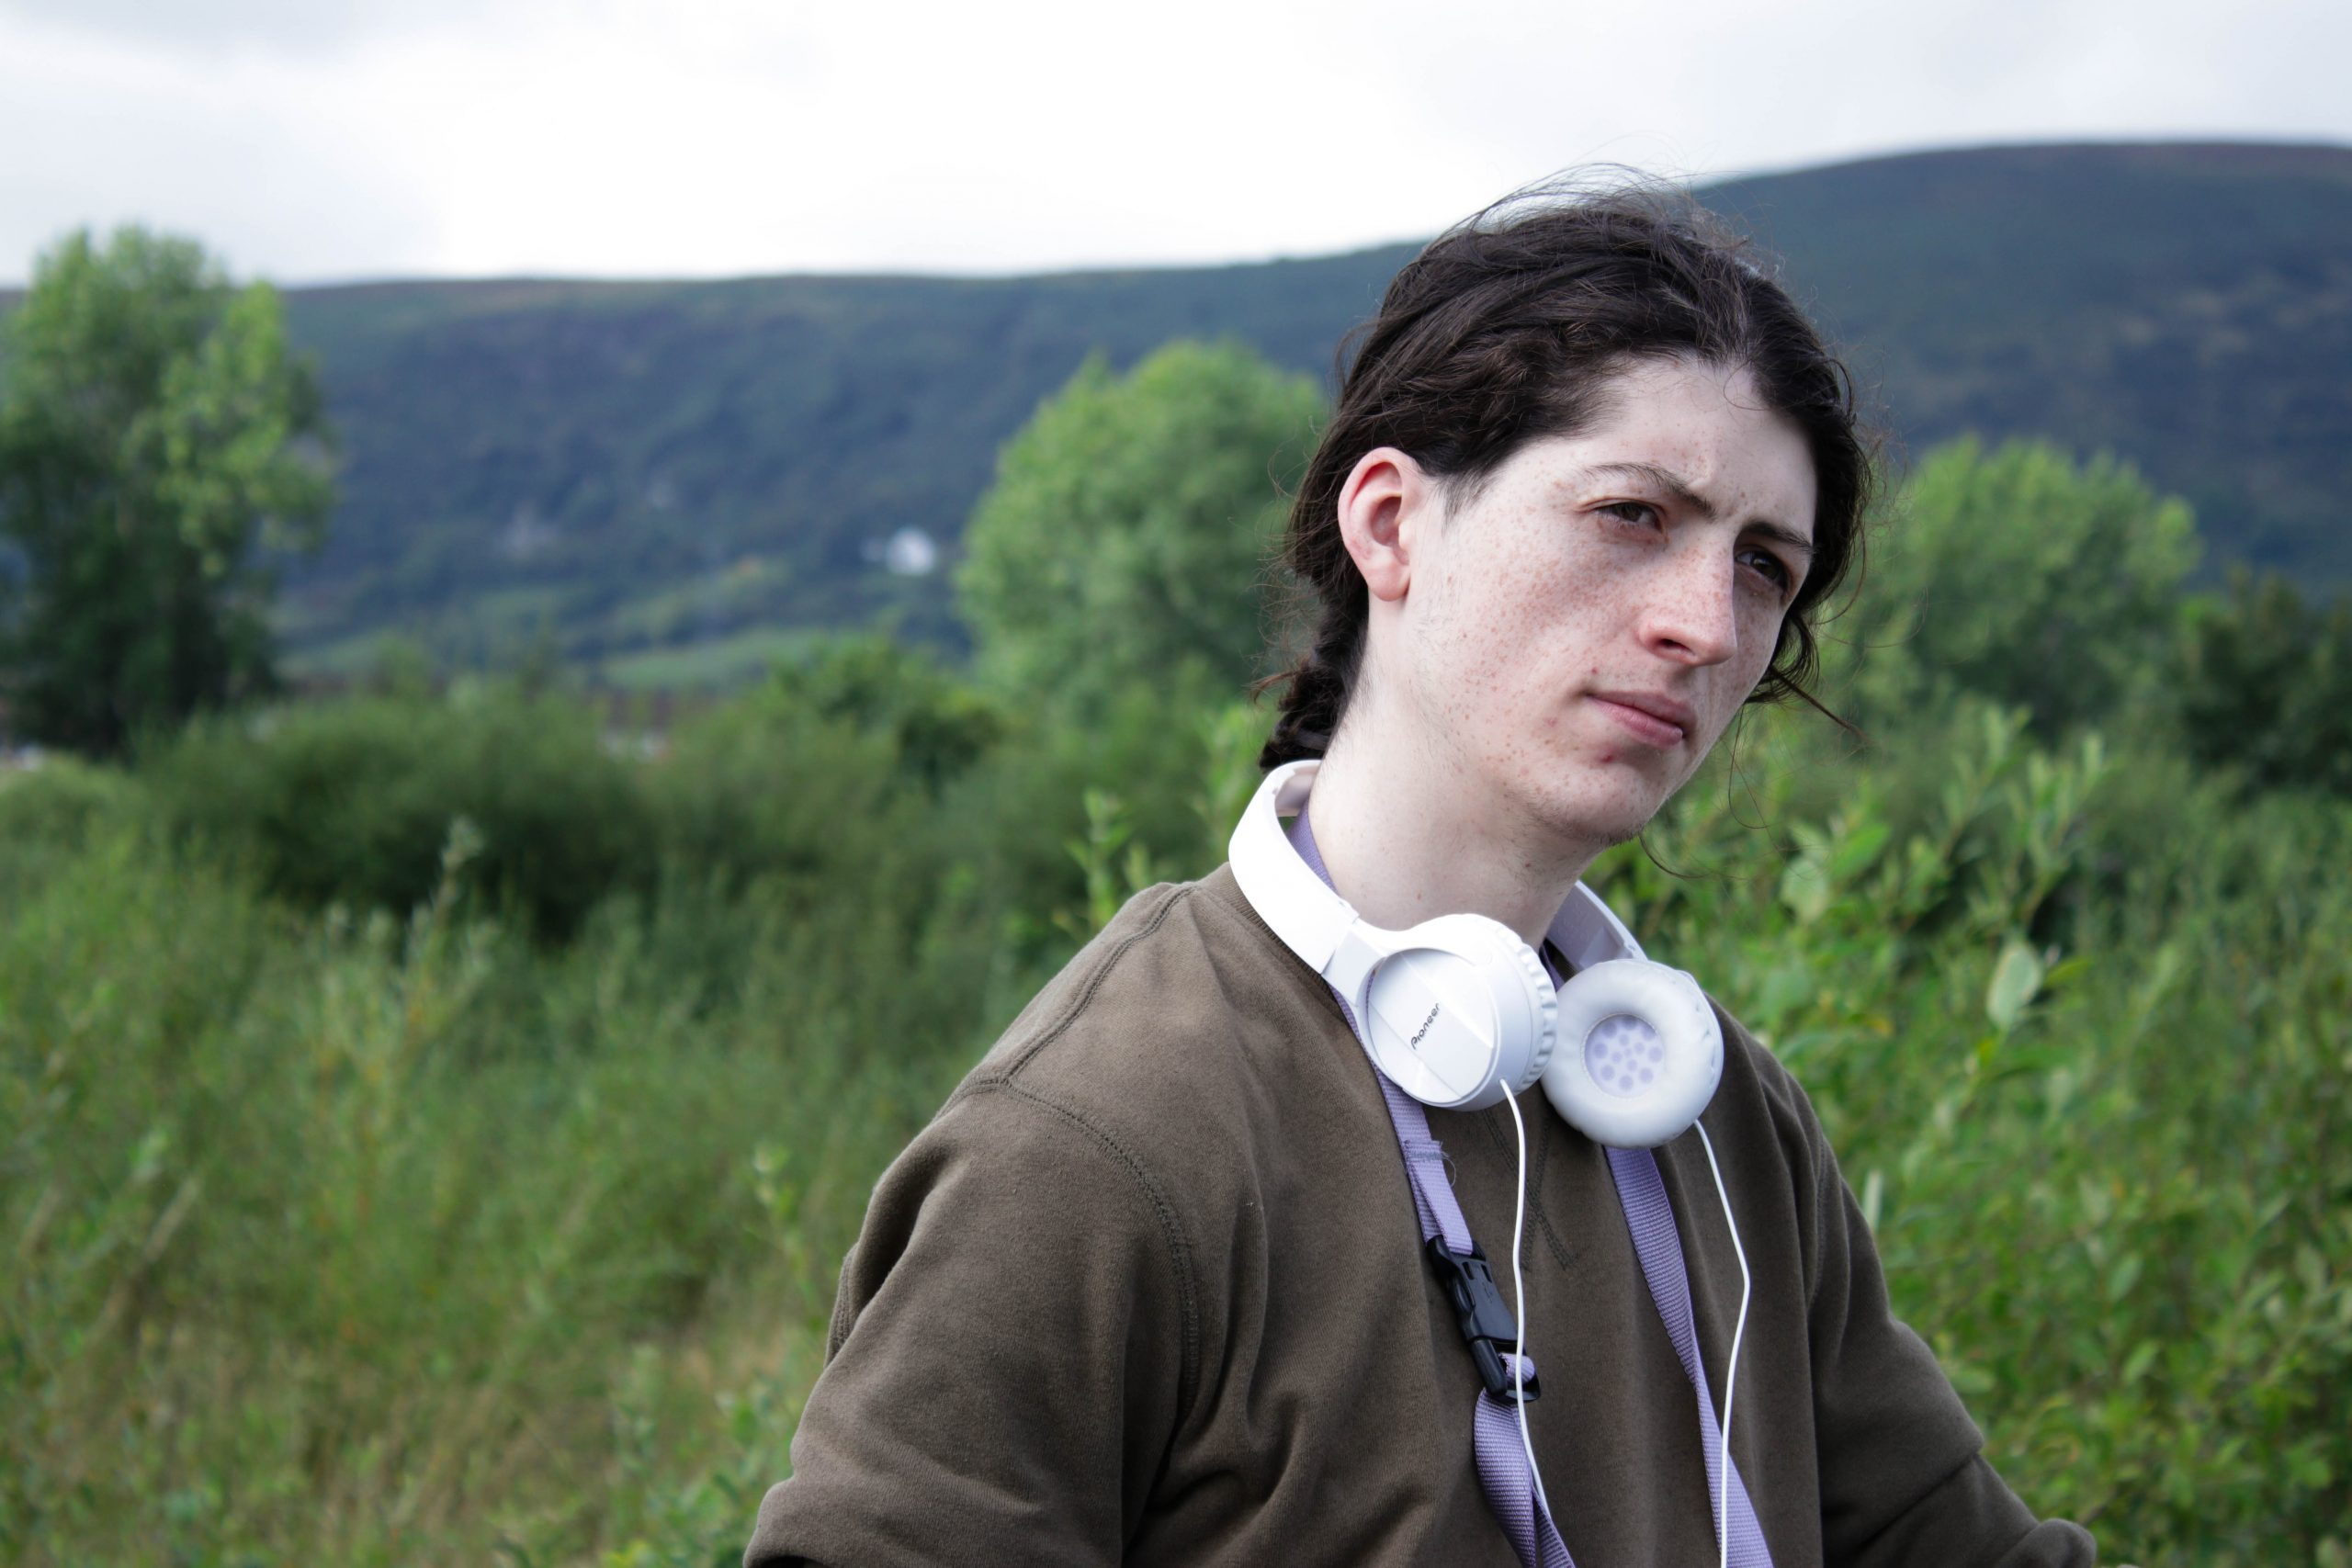 Northern Ireland up for three UK youth film awards